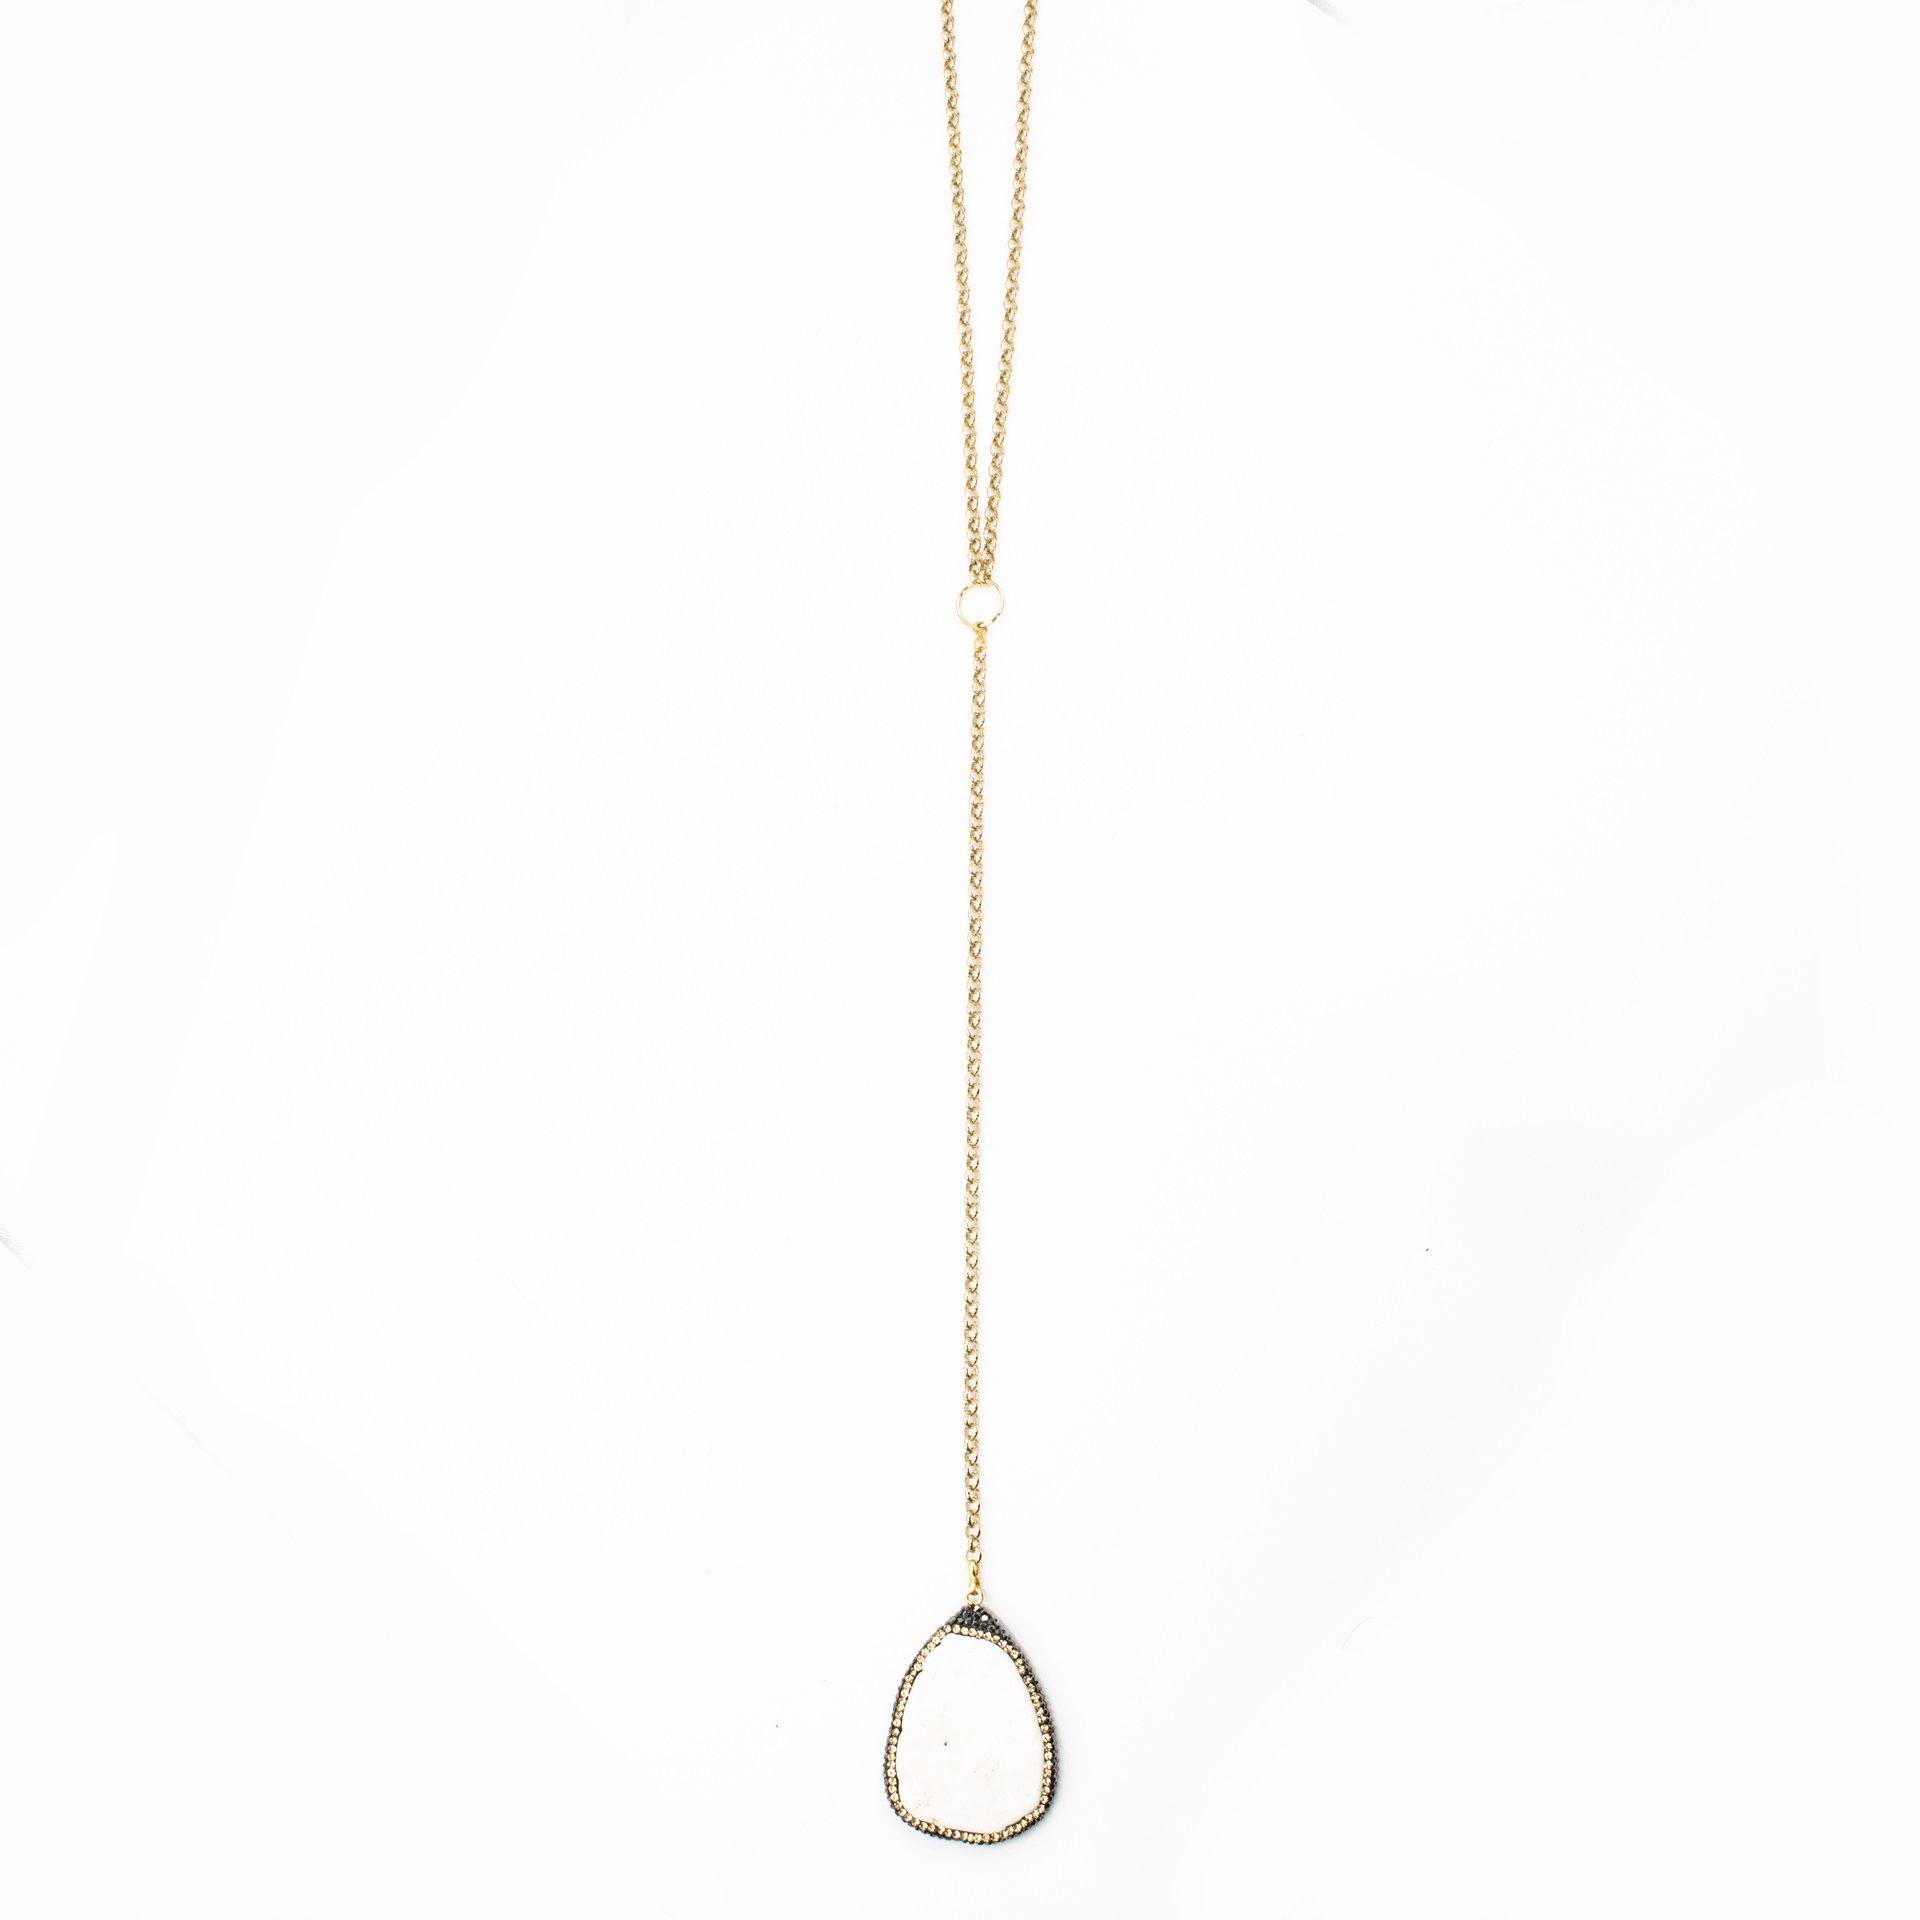 Howlite Pave Lariat Necklace